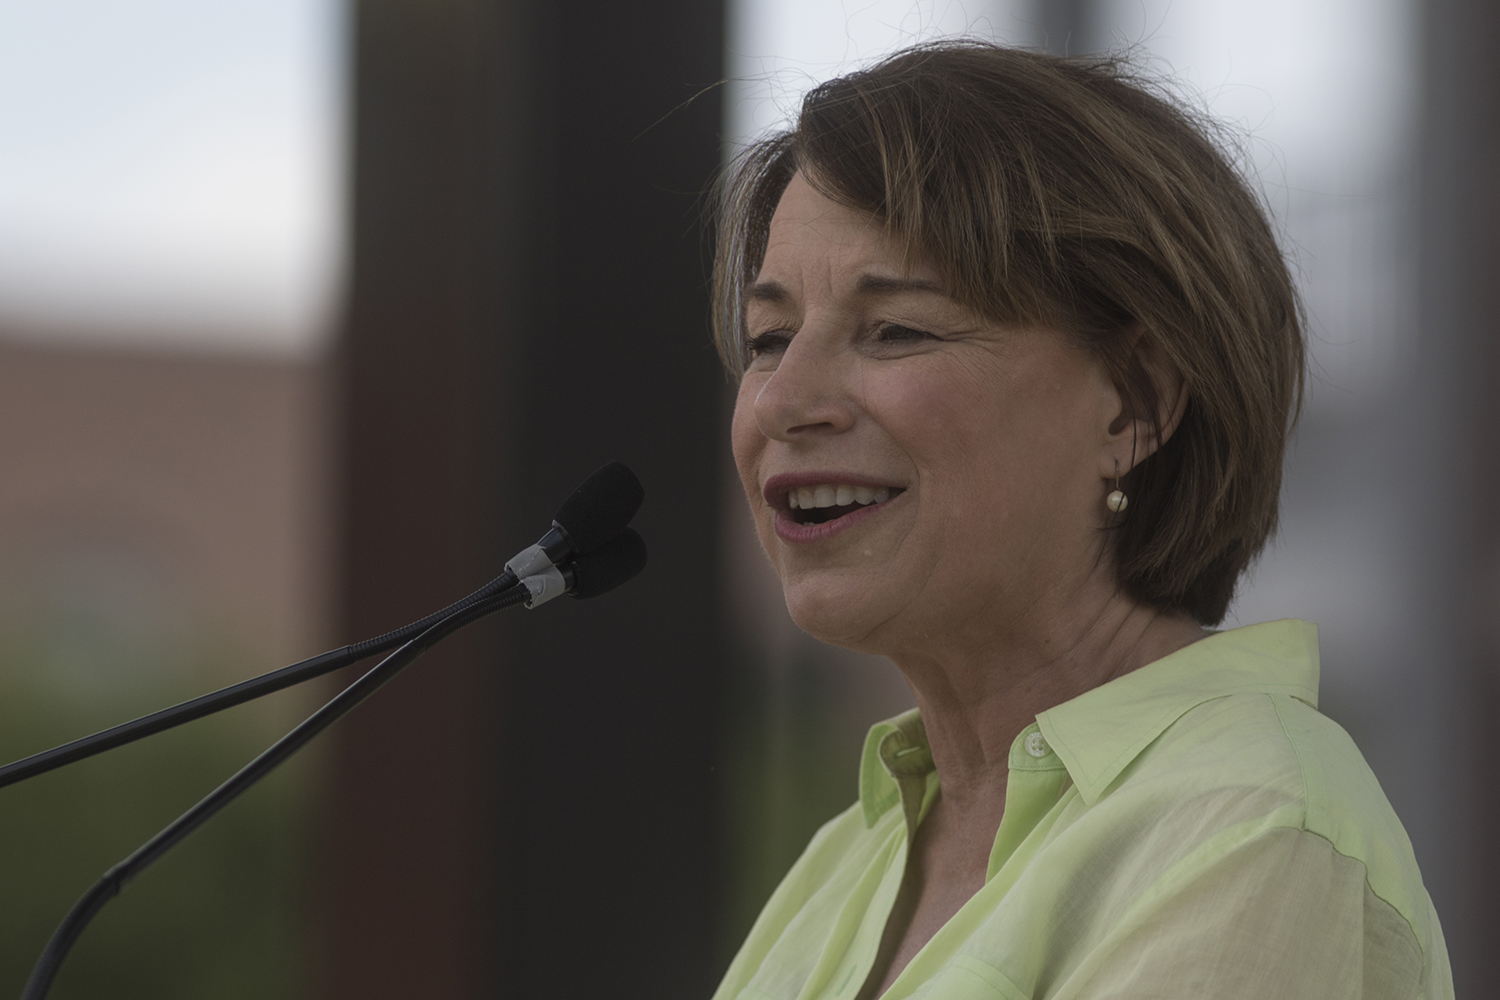 Senator Amy Klobuchar, D-MN, addresses crowds during Progress Iowa Corn Feed at The Newbo City Market in Cedar Rapids on July 14, 2019. 11 candidates came to speak with supporters and meet fans.